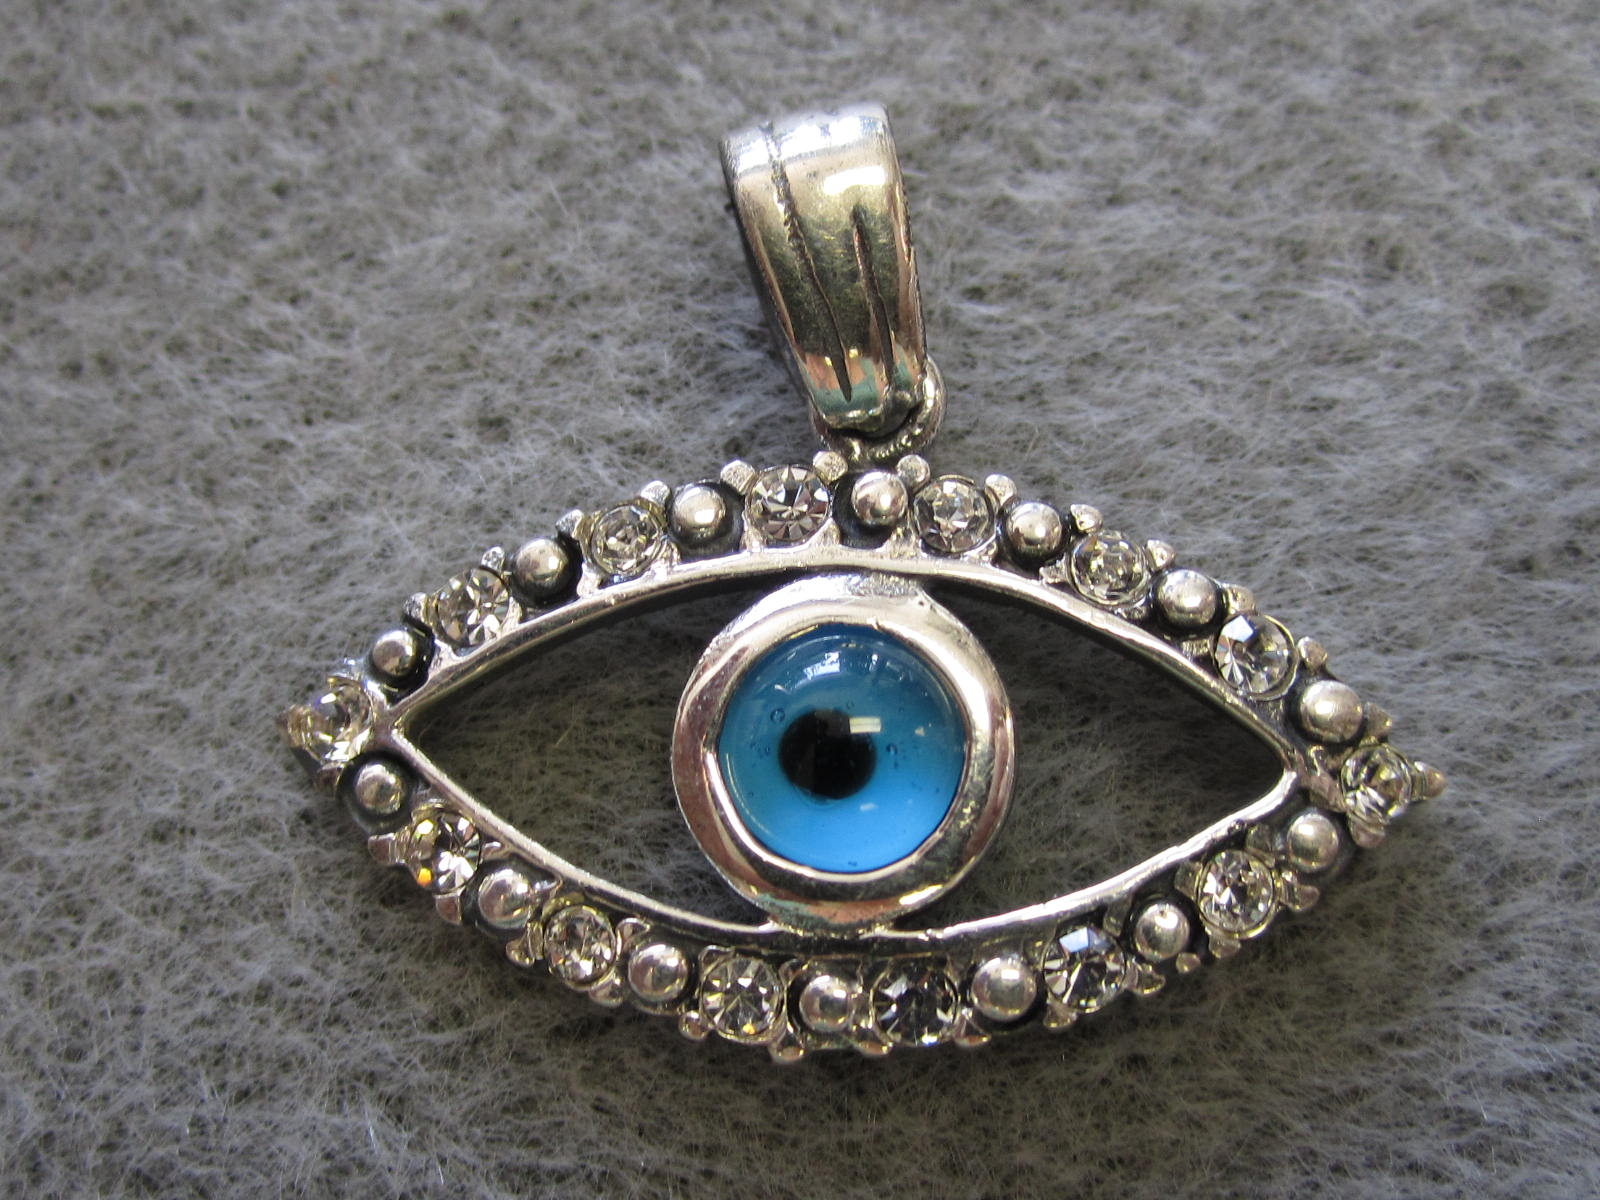 zoom constrain shop anthropologie eye fit necklace slide hei qlt redesign abstract pendant view